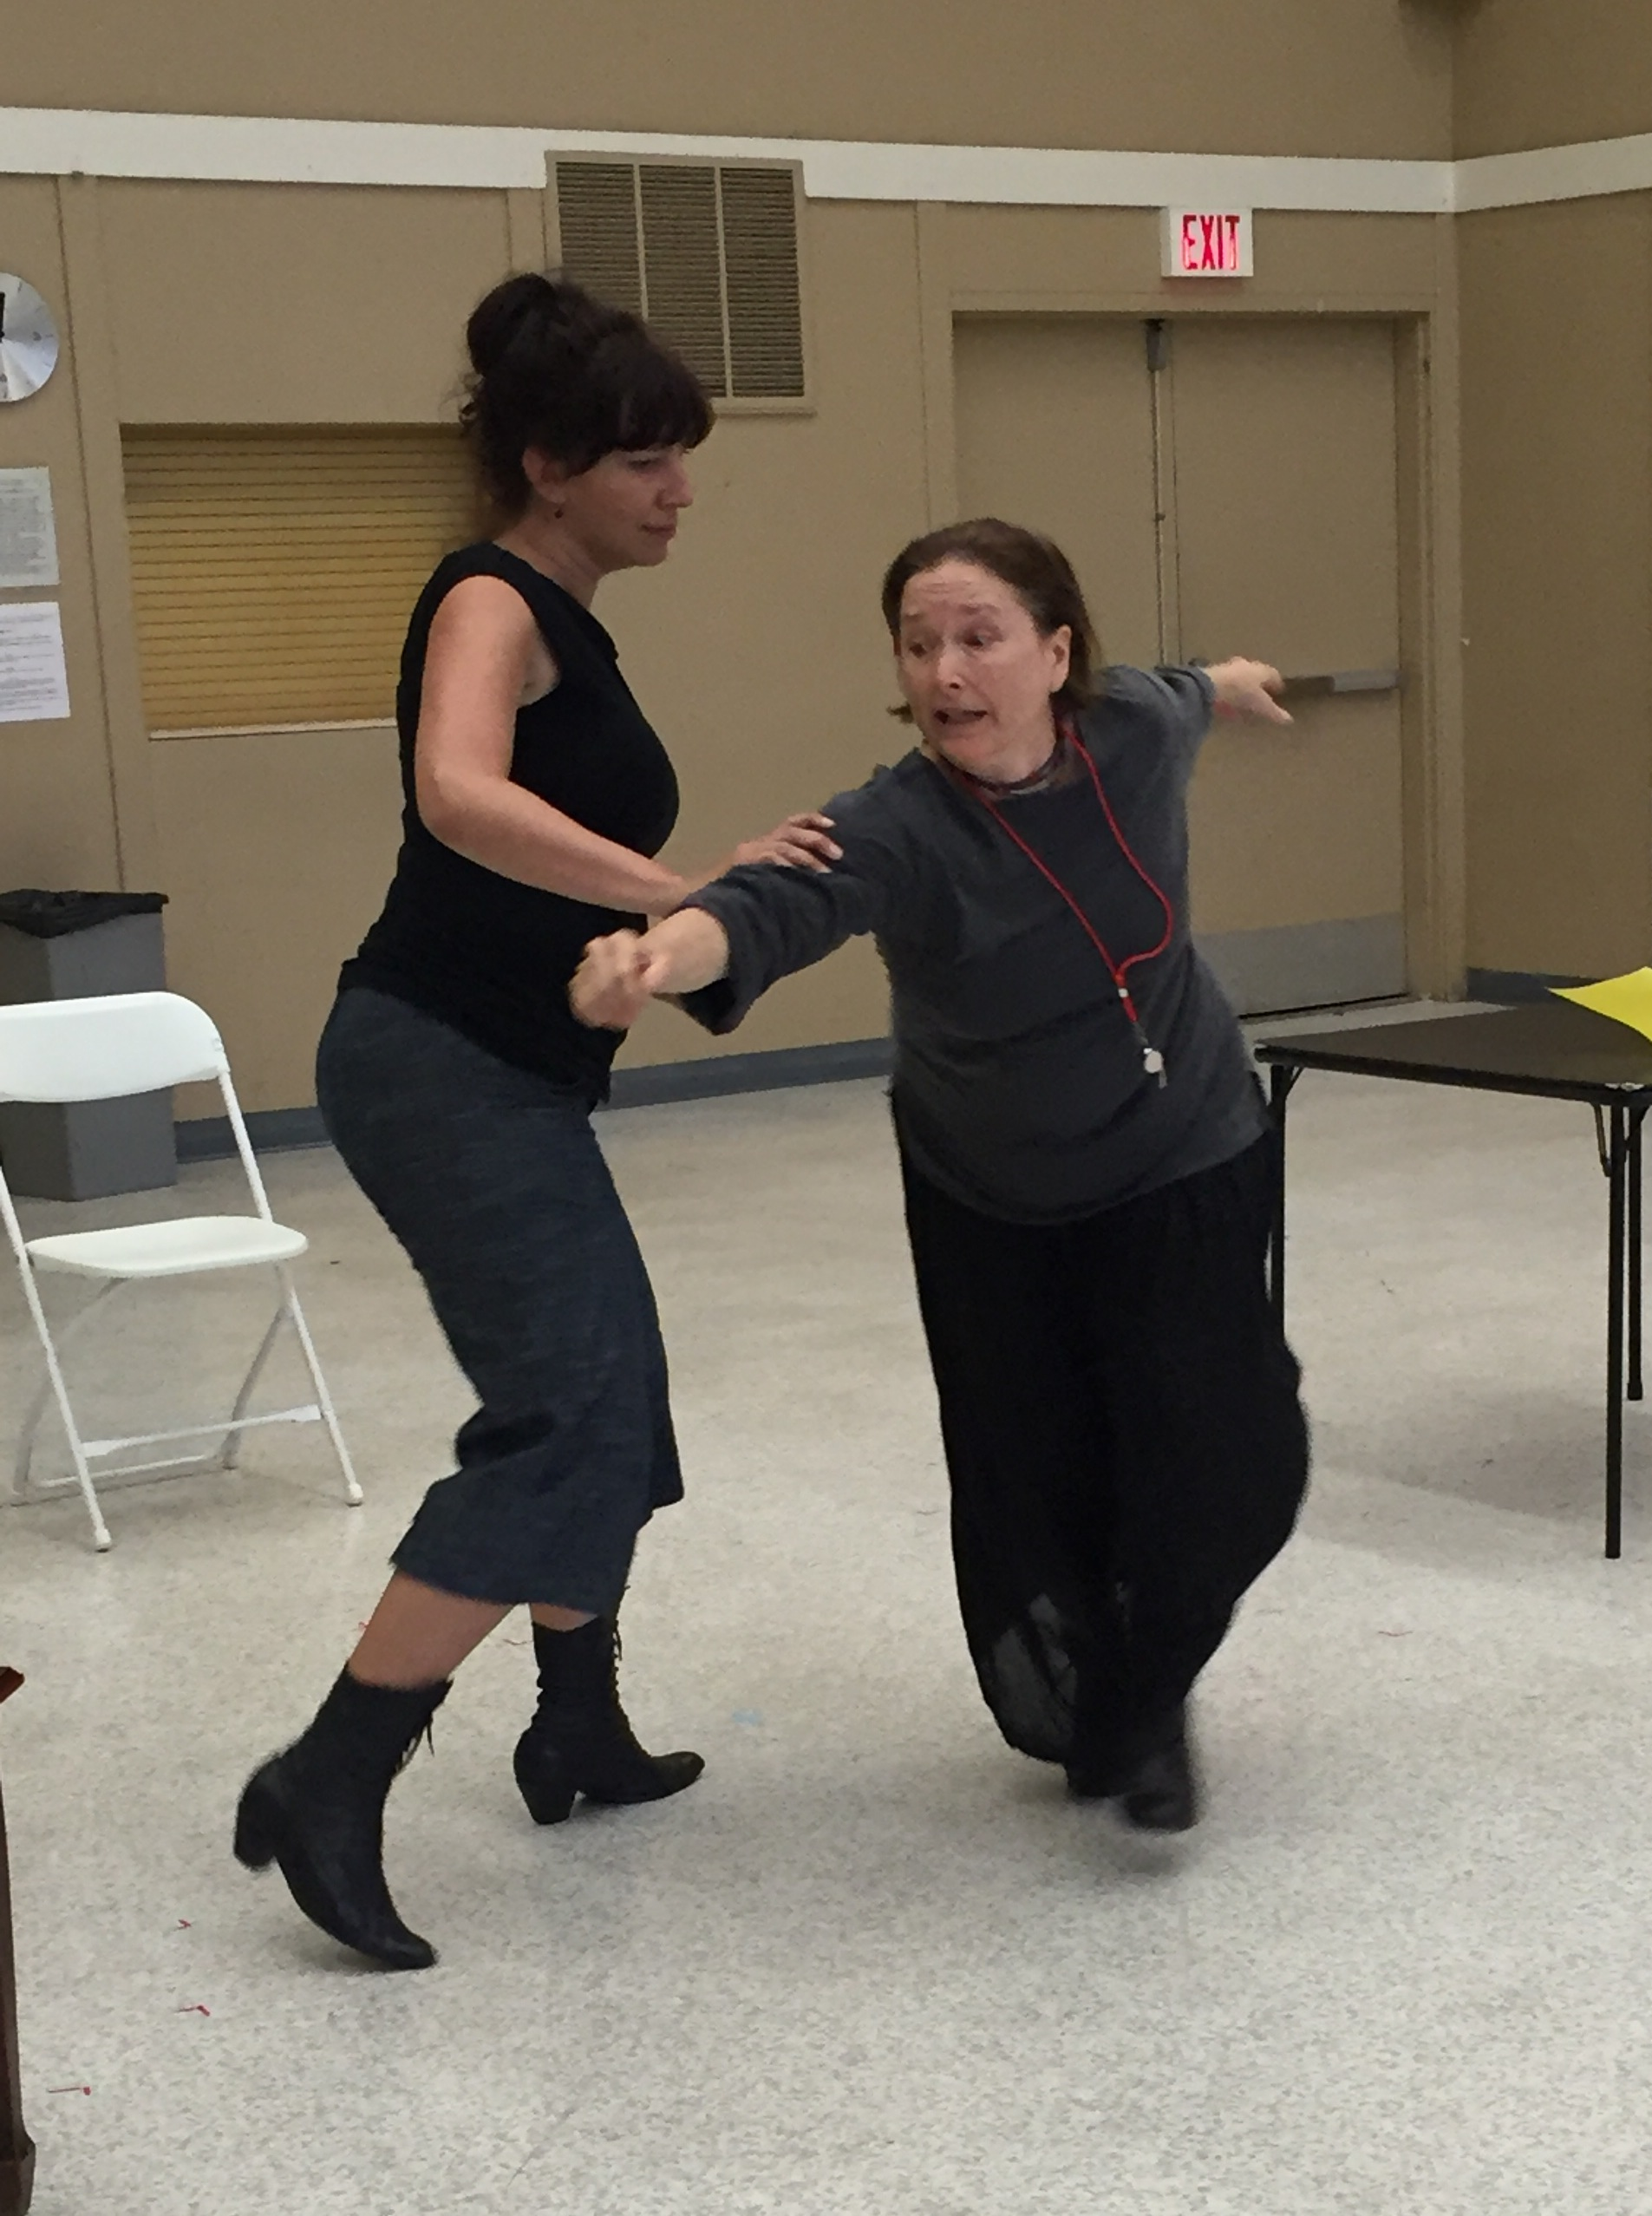 Rehearsing a fight with Sarah May Redmond. Just off camera is our fight choreographer, Derek Metz... who has faith that I'll get there, eventually!